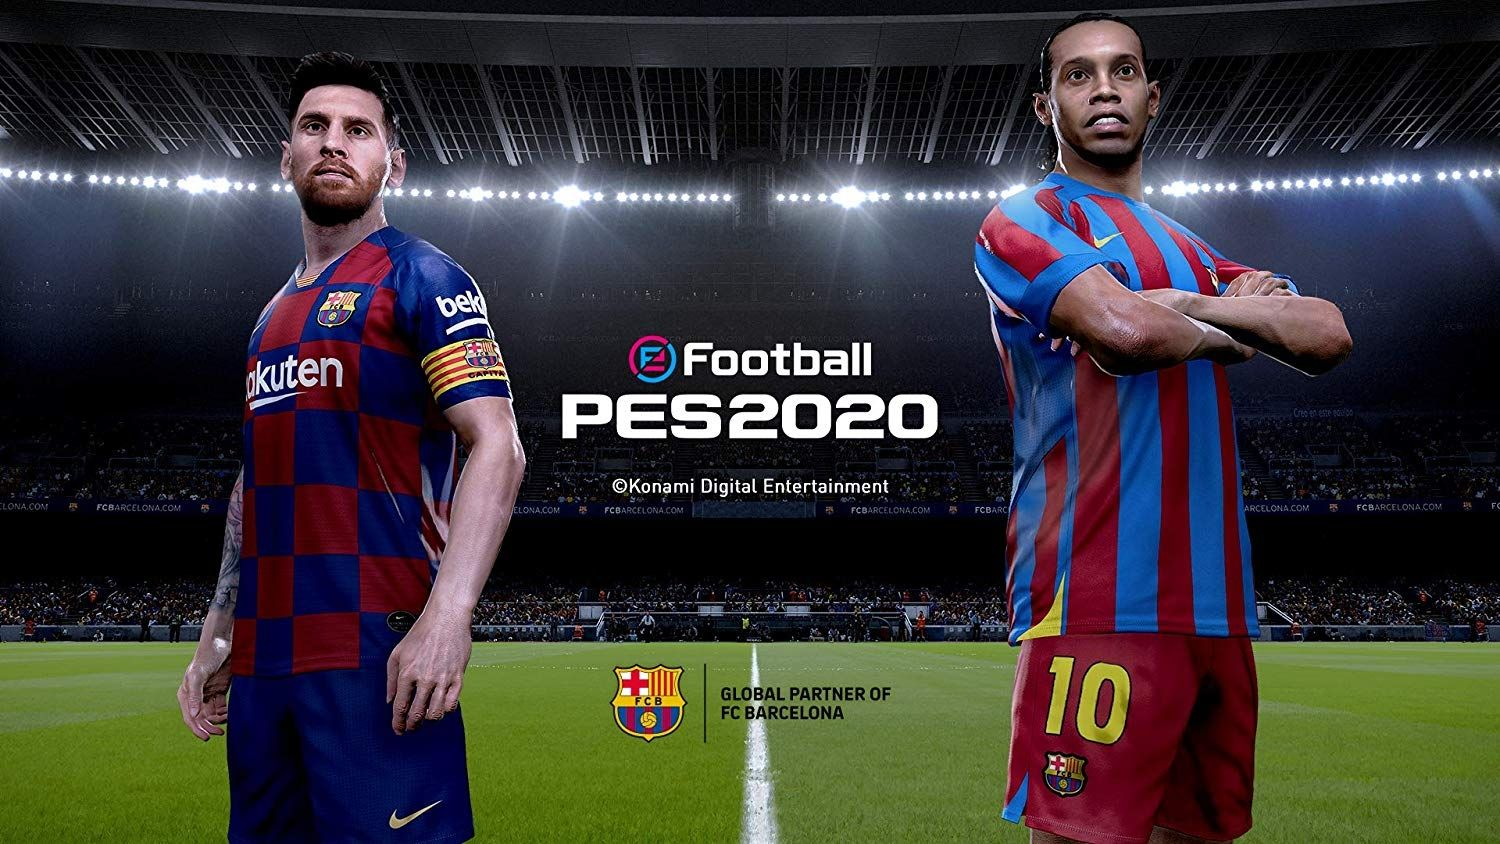 eFootball Pro Evolution Soccer 2020 (Xbox One) - 5